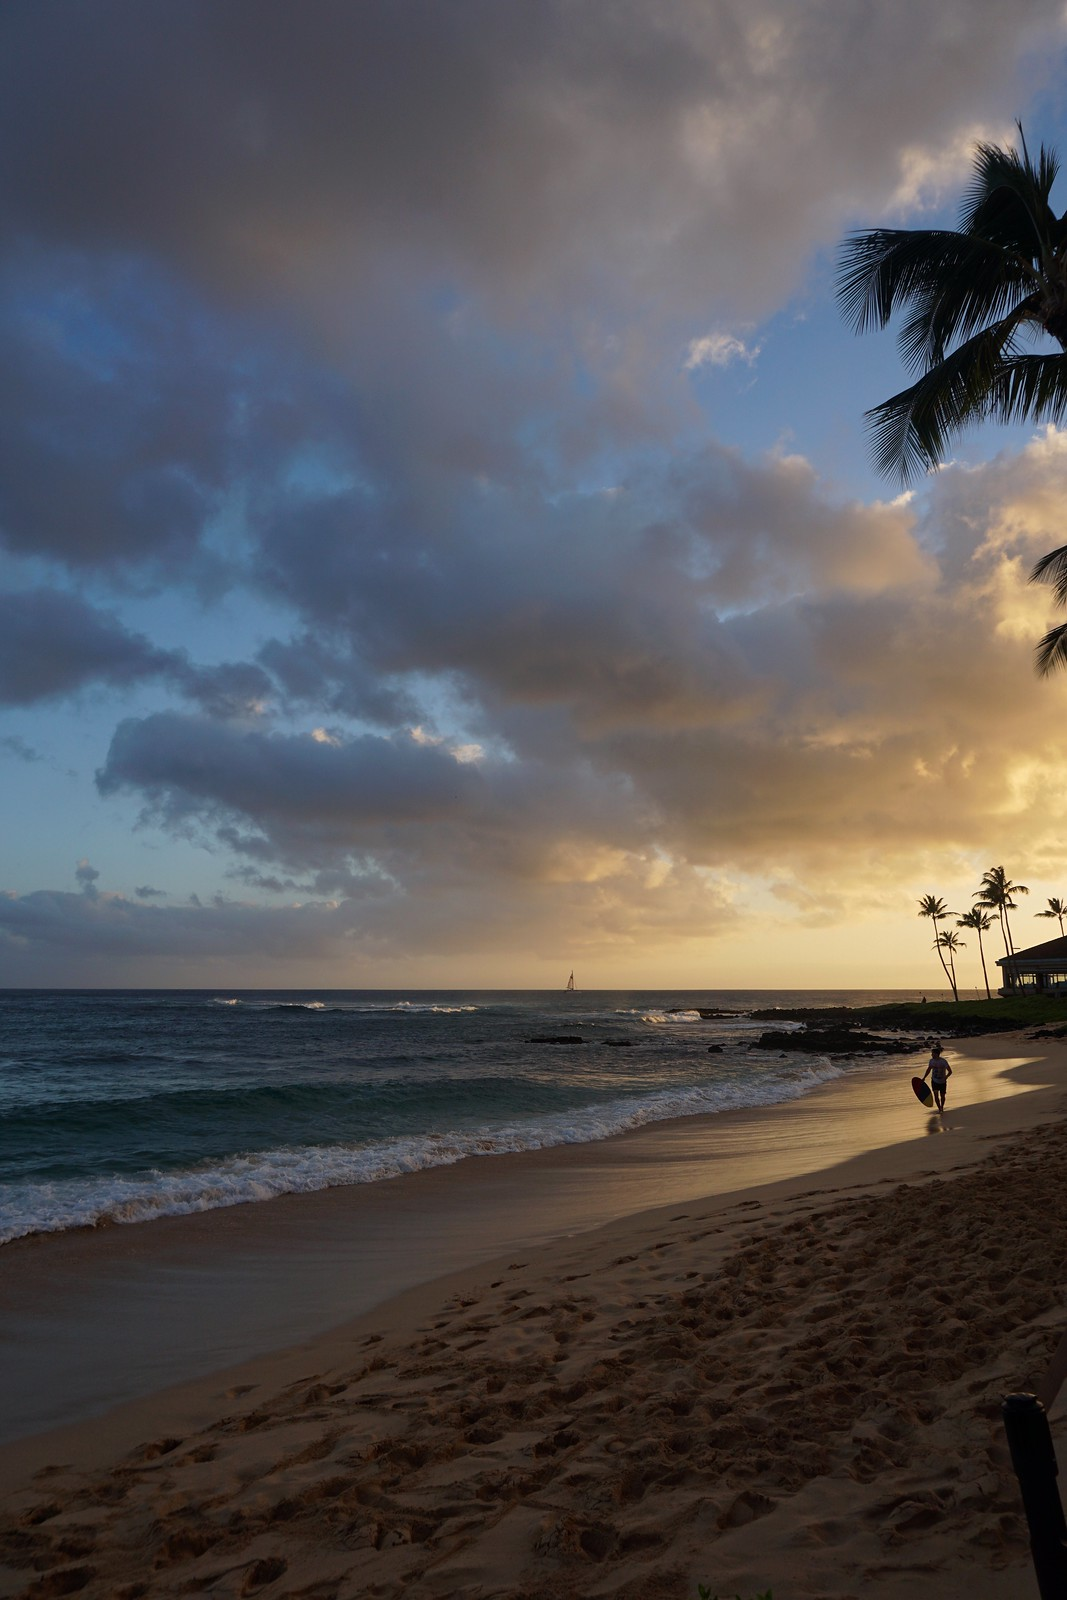 Sunset Sheraton Kauai Resort Poipu Beach Hawaii